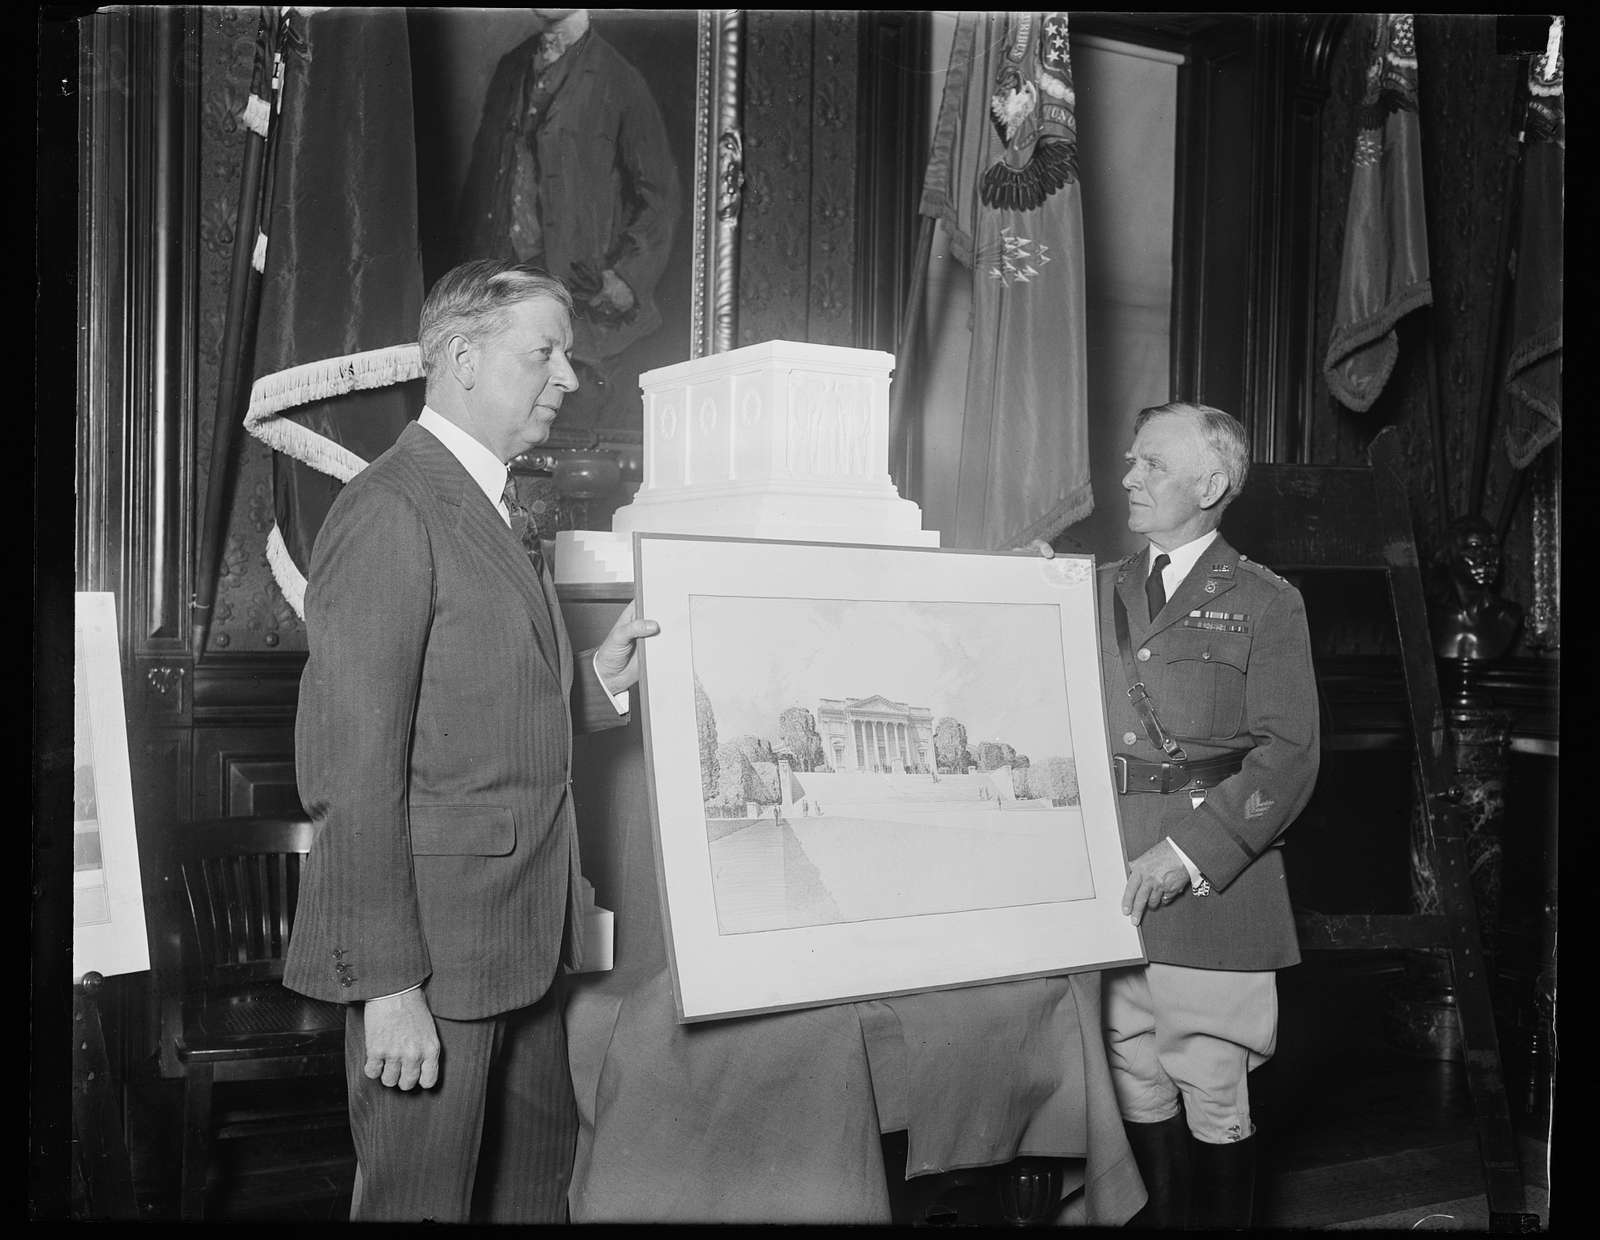 Secretary of War approves of design for Tomb of America's Unknown Soldier. The Secretary of War Dwight F. Davis (left) and Maj. Gen. B.F. Cheatham, Quartermaster General of the United States Army, inspecting the accepted design and model for the completion of the Tomb of the Unknown Soldier in Arlington National Cemetery, which was submitted by Thomas Hudson Jones, sculptor, of New York City; and Lorimer Rich, architect, also of New York City. This design was selected after a competition in which seventy-three designs were submitted